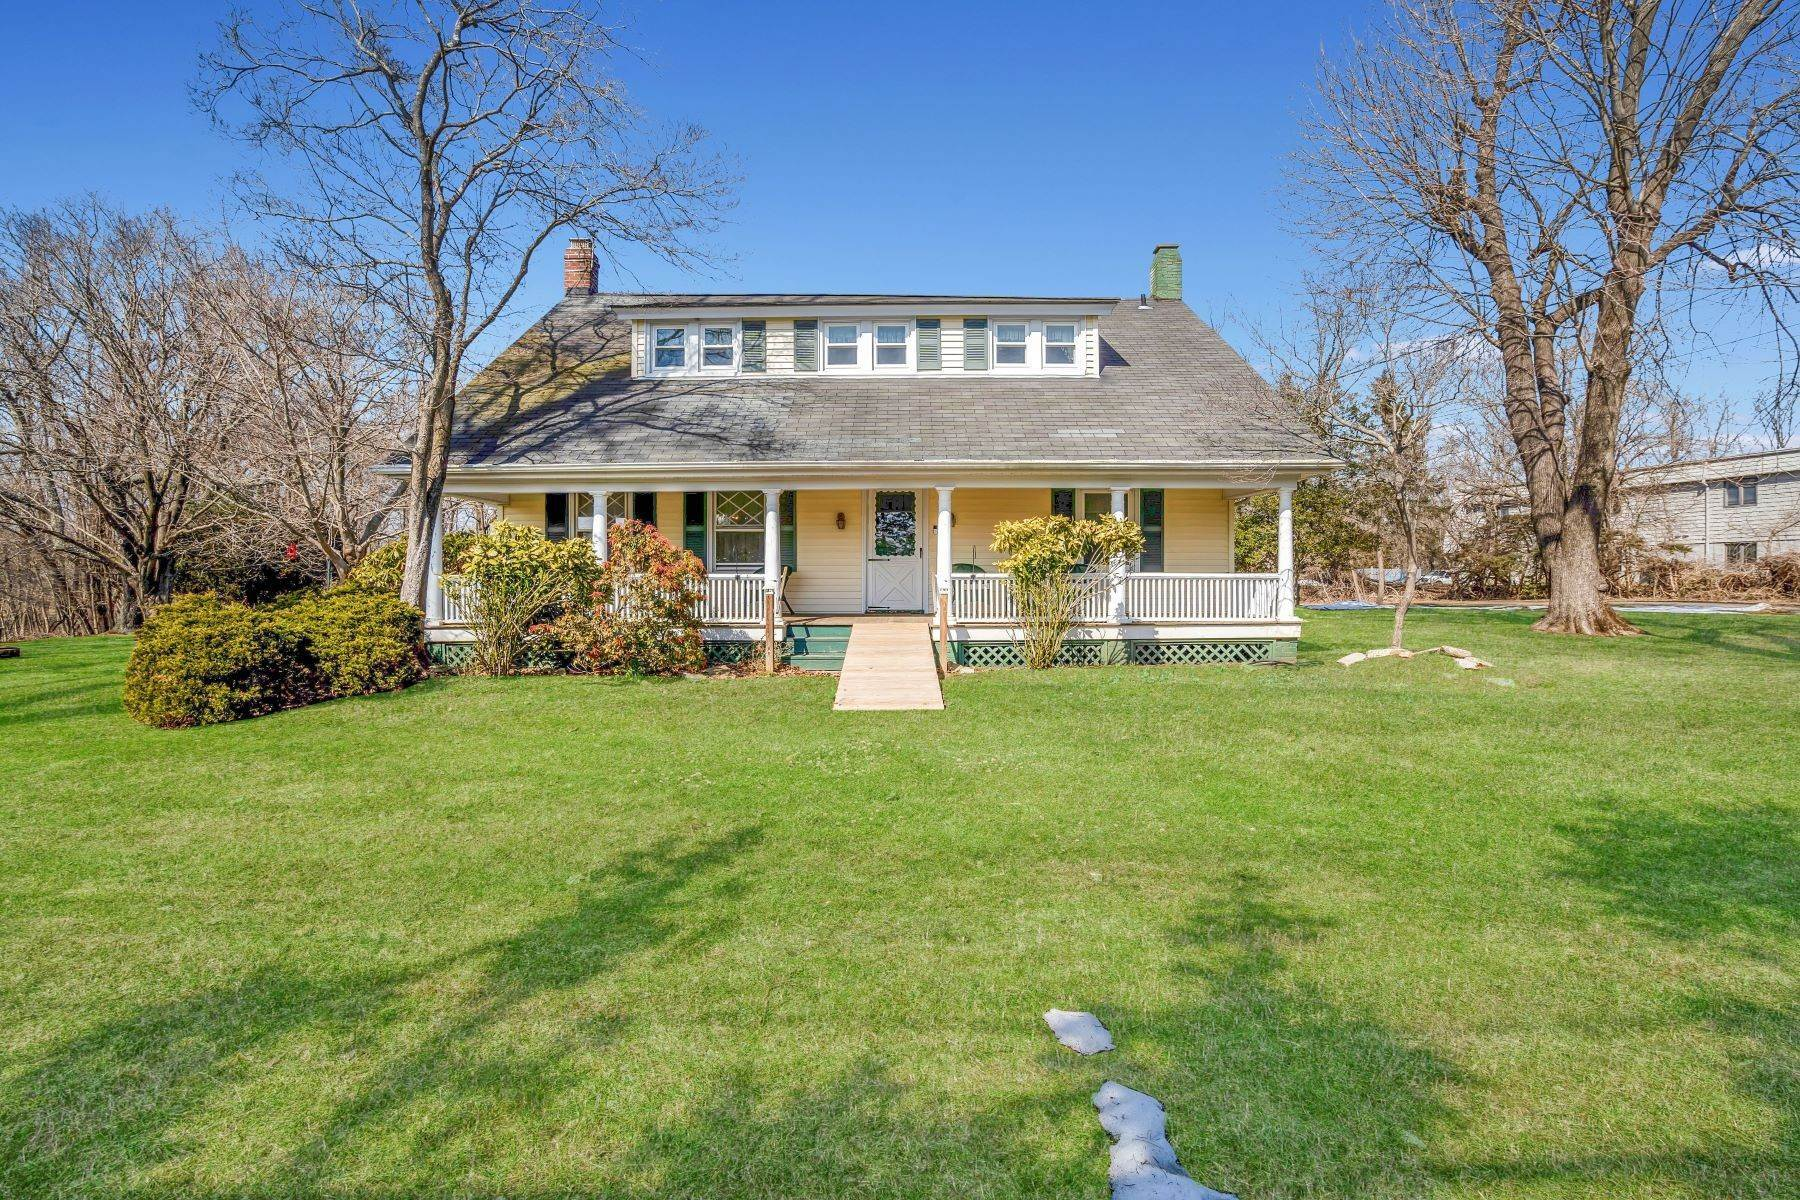 Single Family Homes for Sale at Centrally Located in Holmdel 24 Schanck Road Holmdel, New Jersey 07733 United States